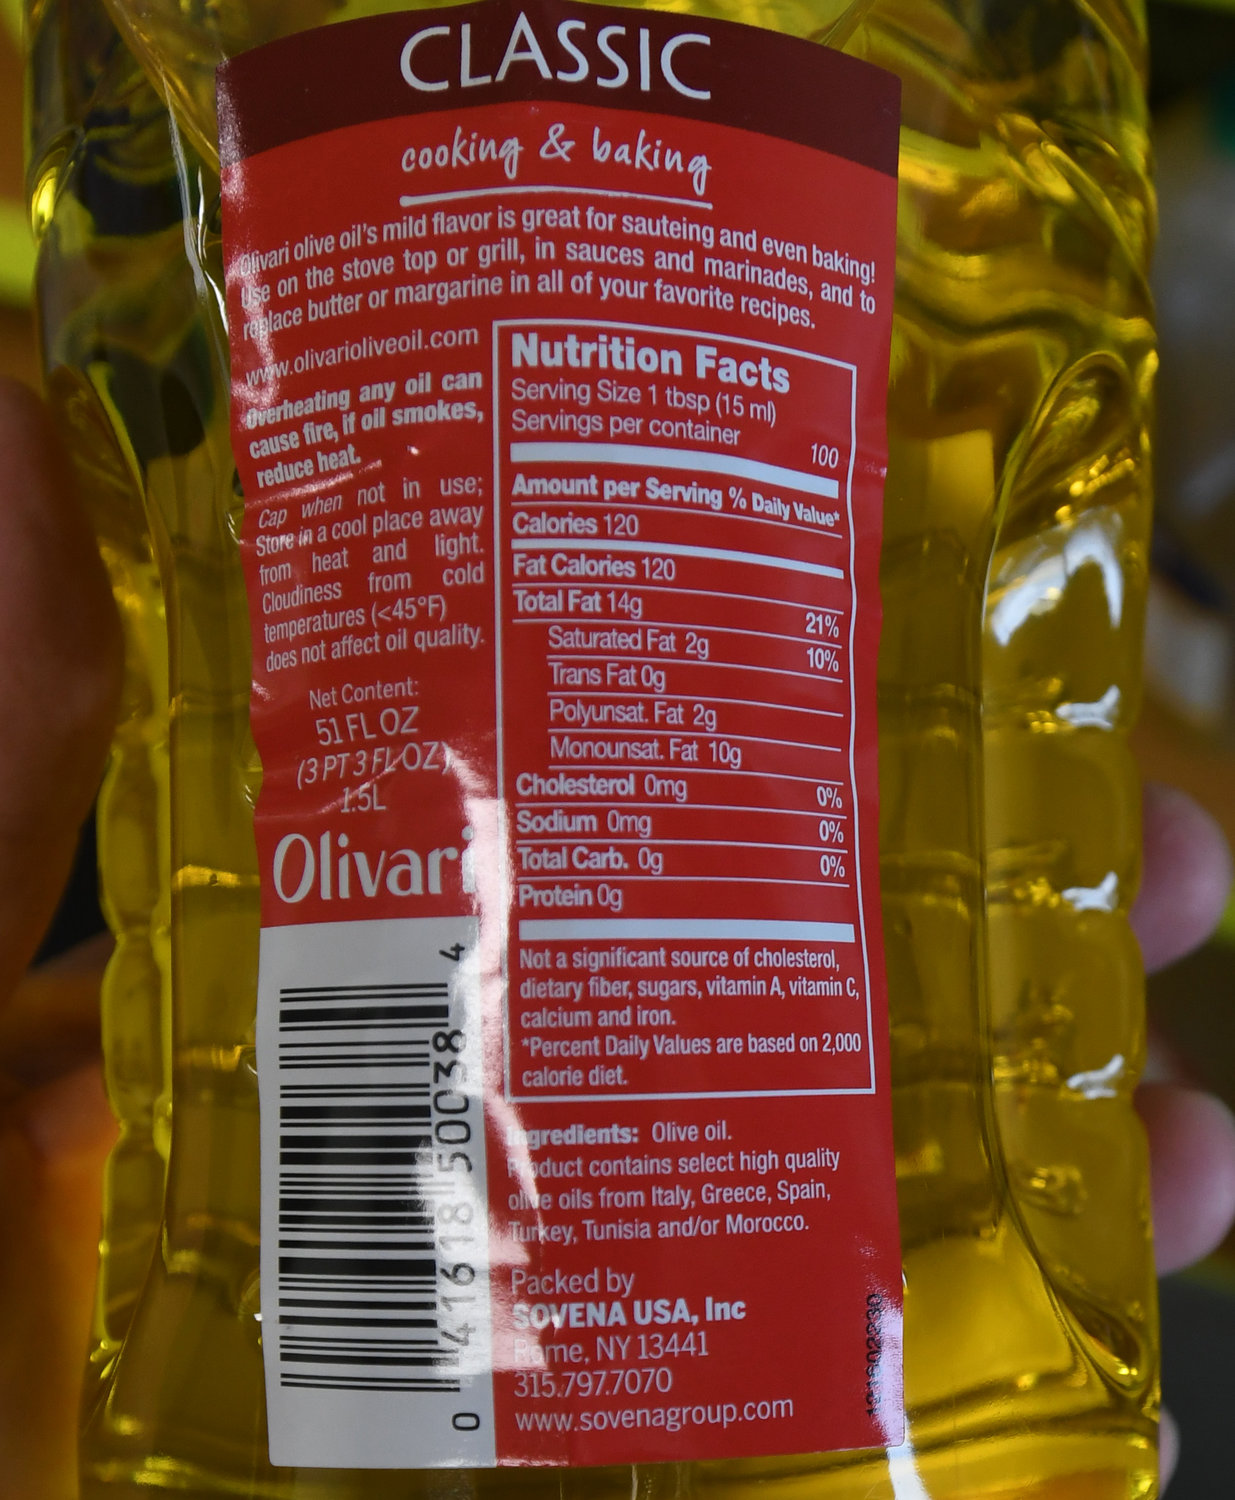 COMING FROM ROME — A label on the back of an Olivari olive oil container states at the bottom that it was packed by Sovena USA Inc. in Rome. Olivari is a brand of the company, which also sells its products under various private labels including for large retail chains. It also sells products to food service and industrial markets.